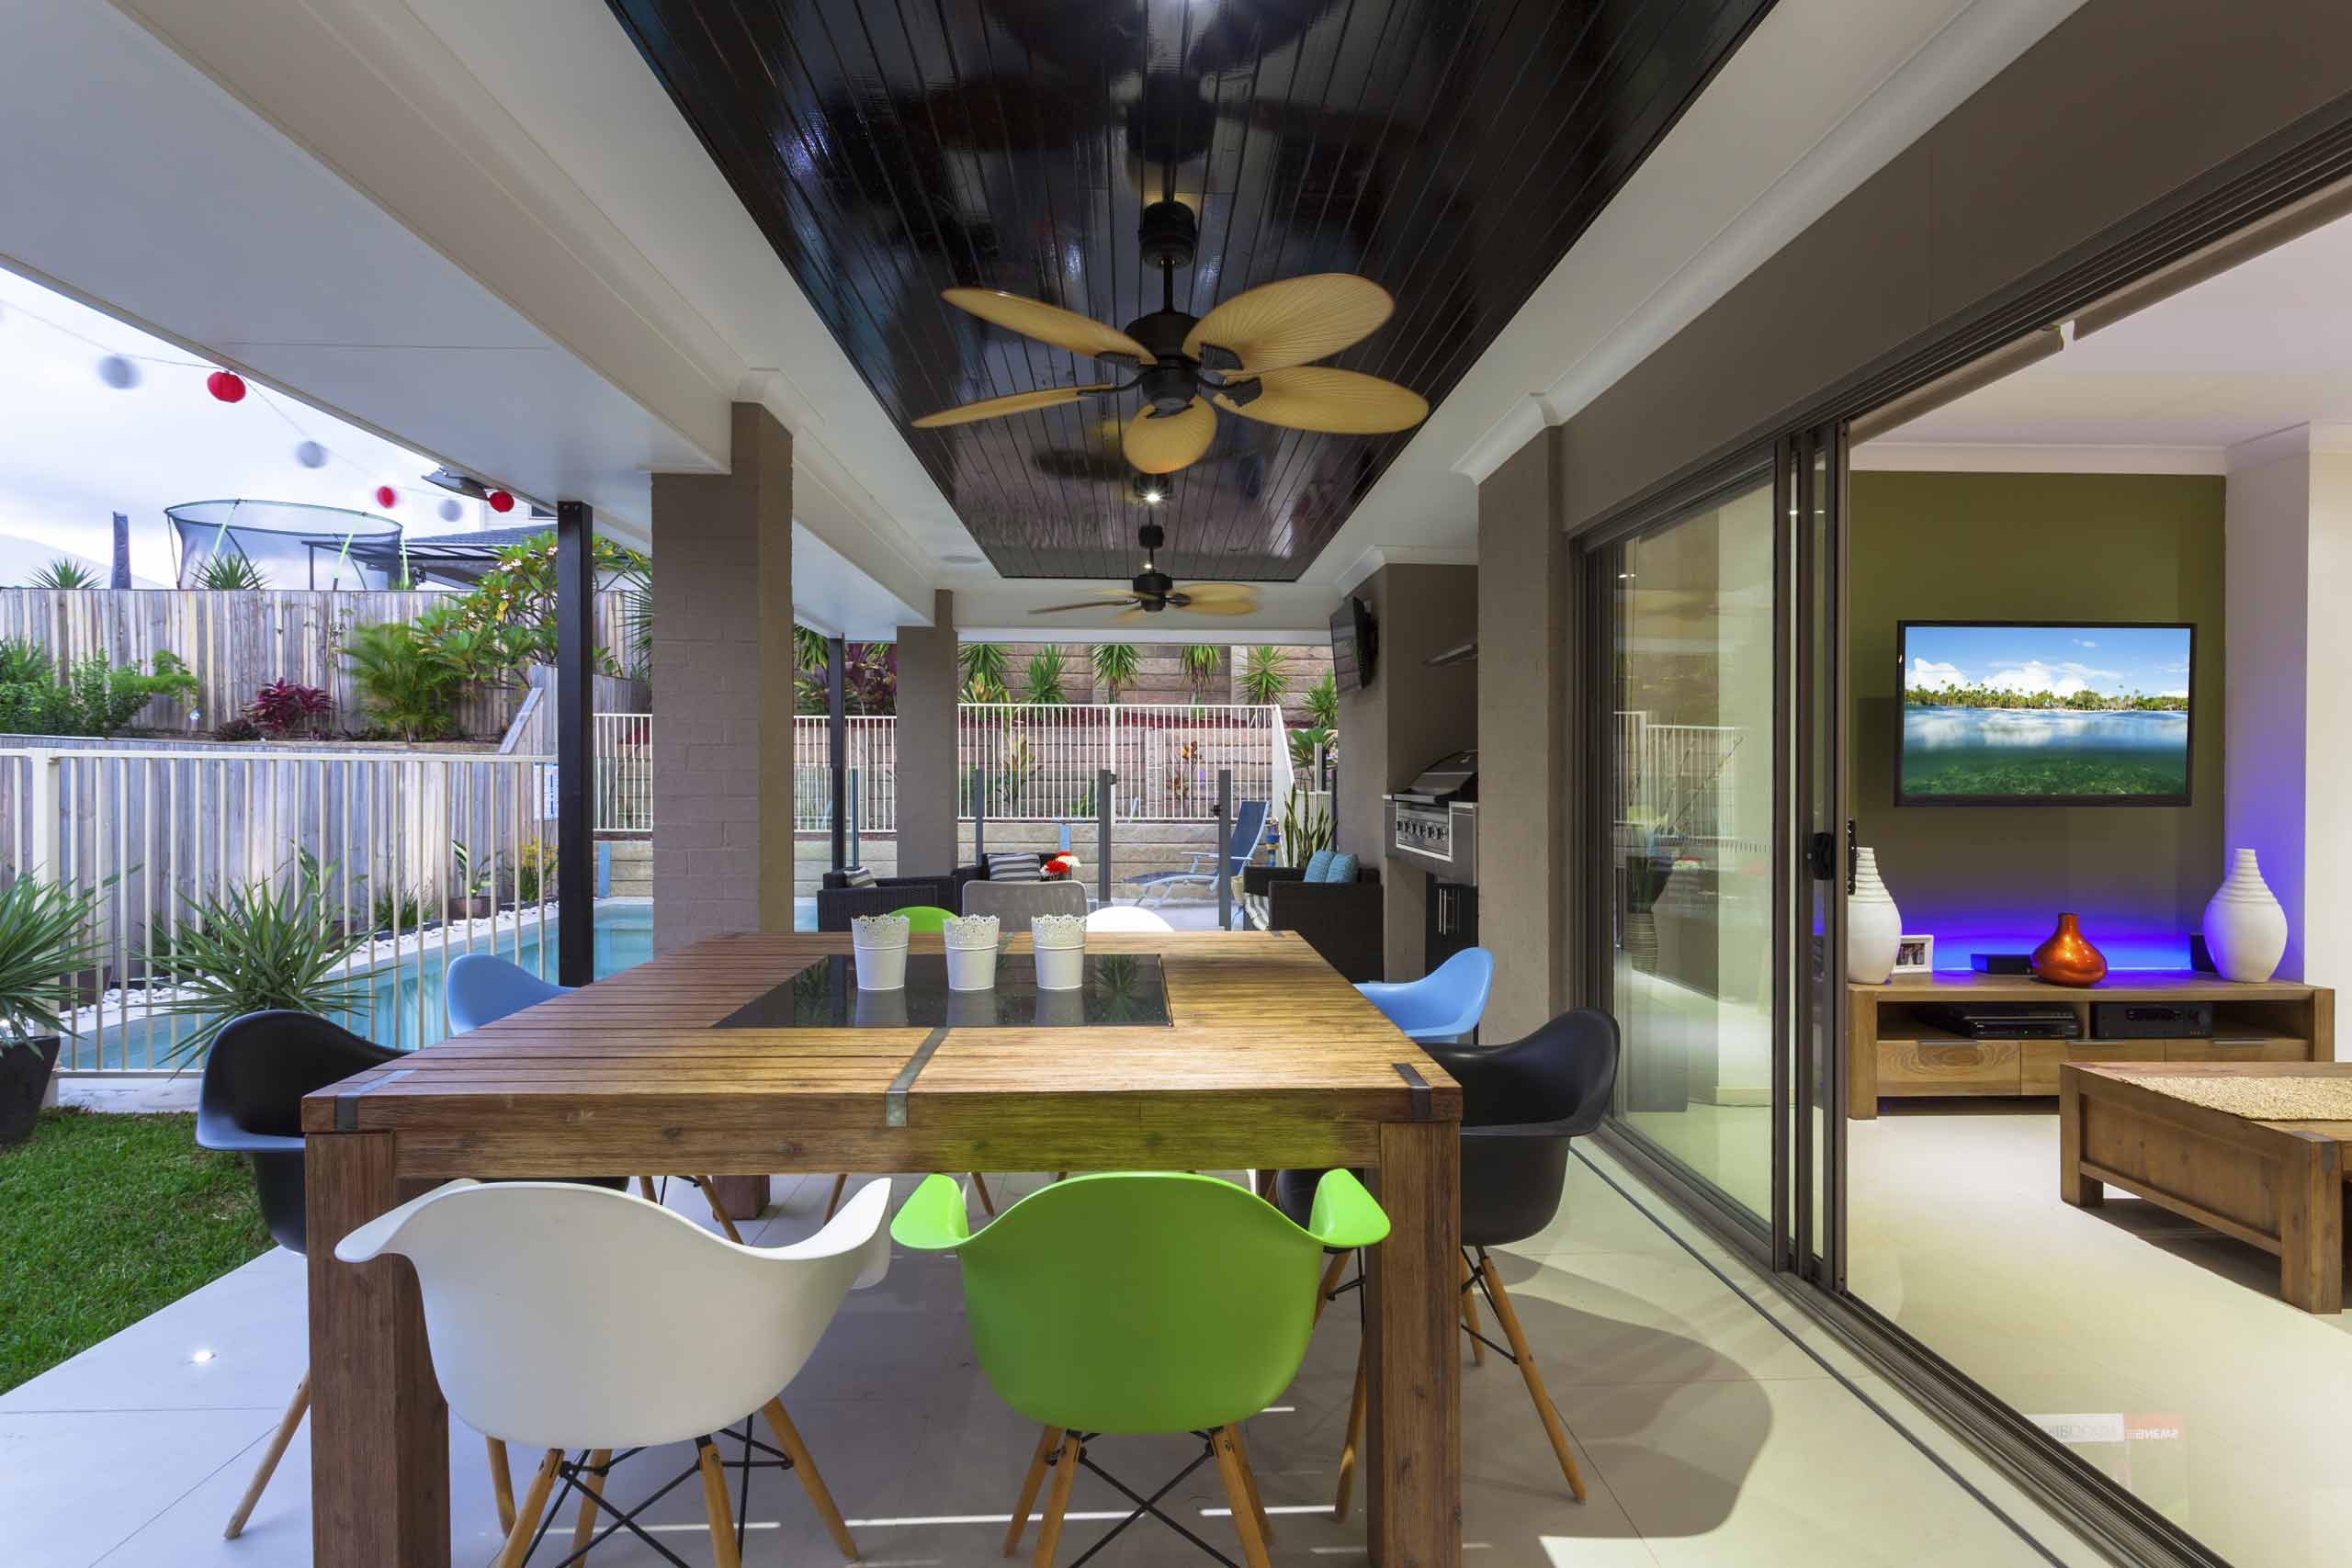 New House Design Perth - Outdoor Living